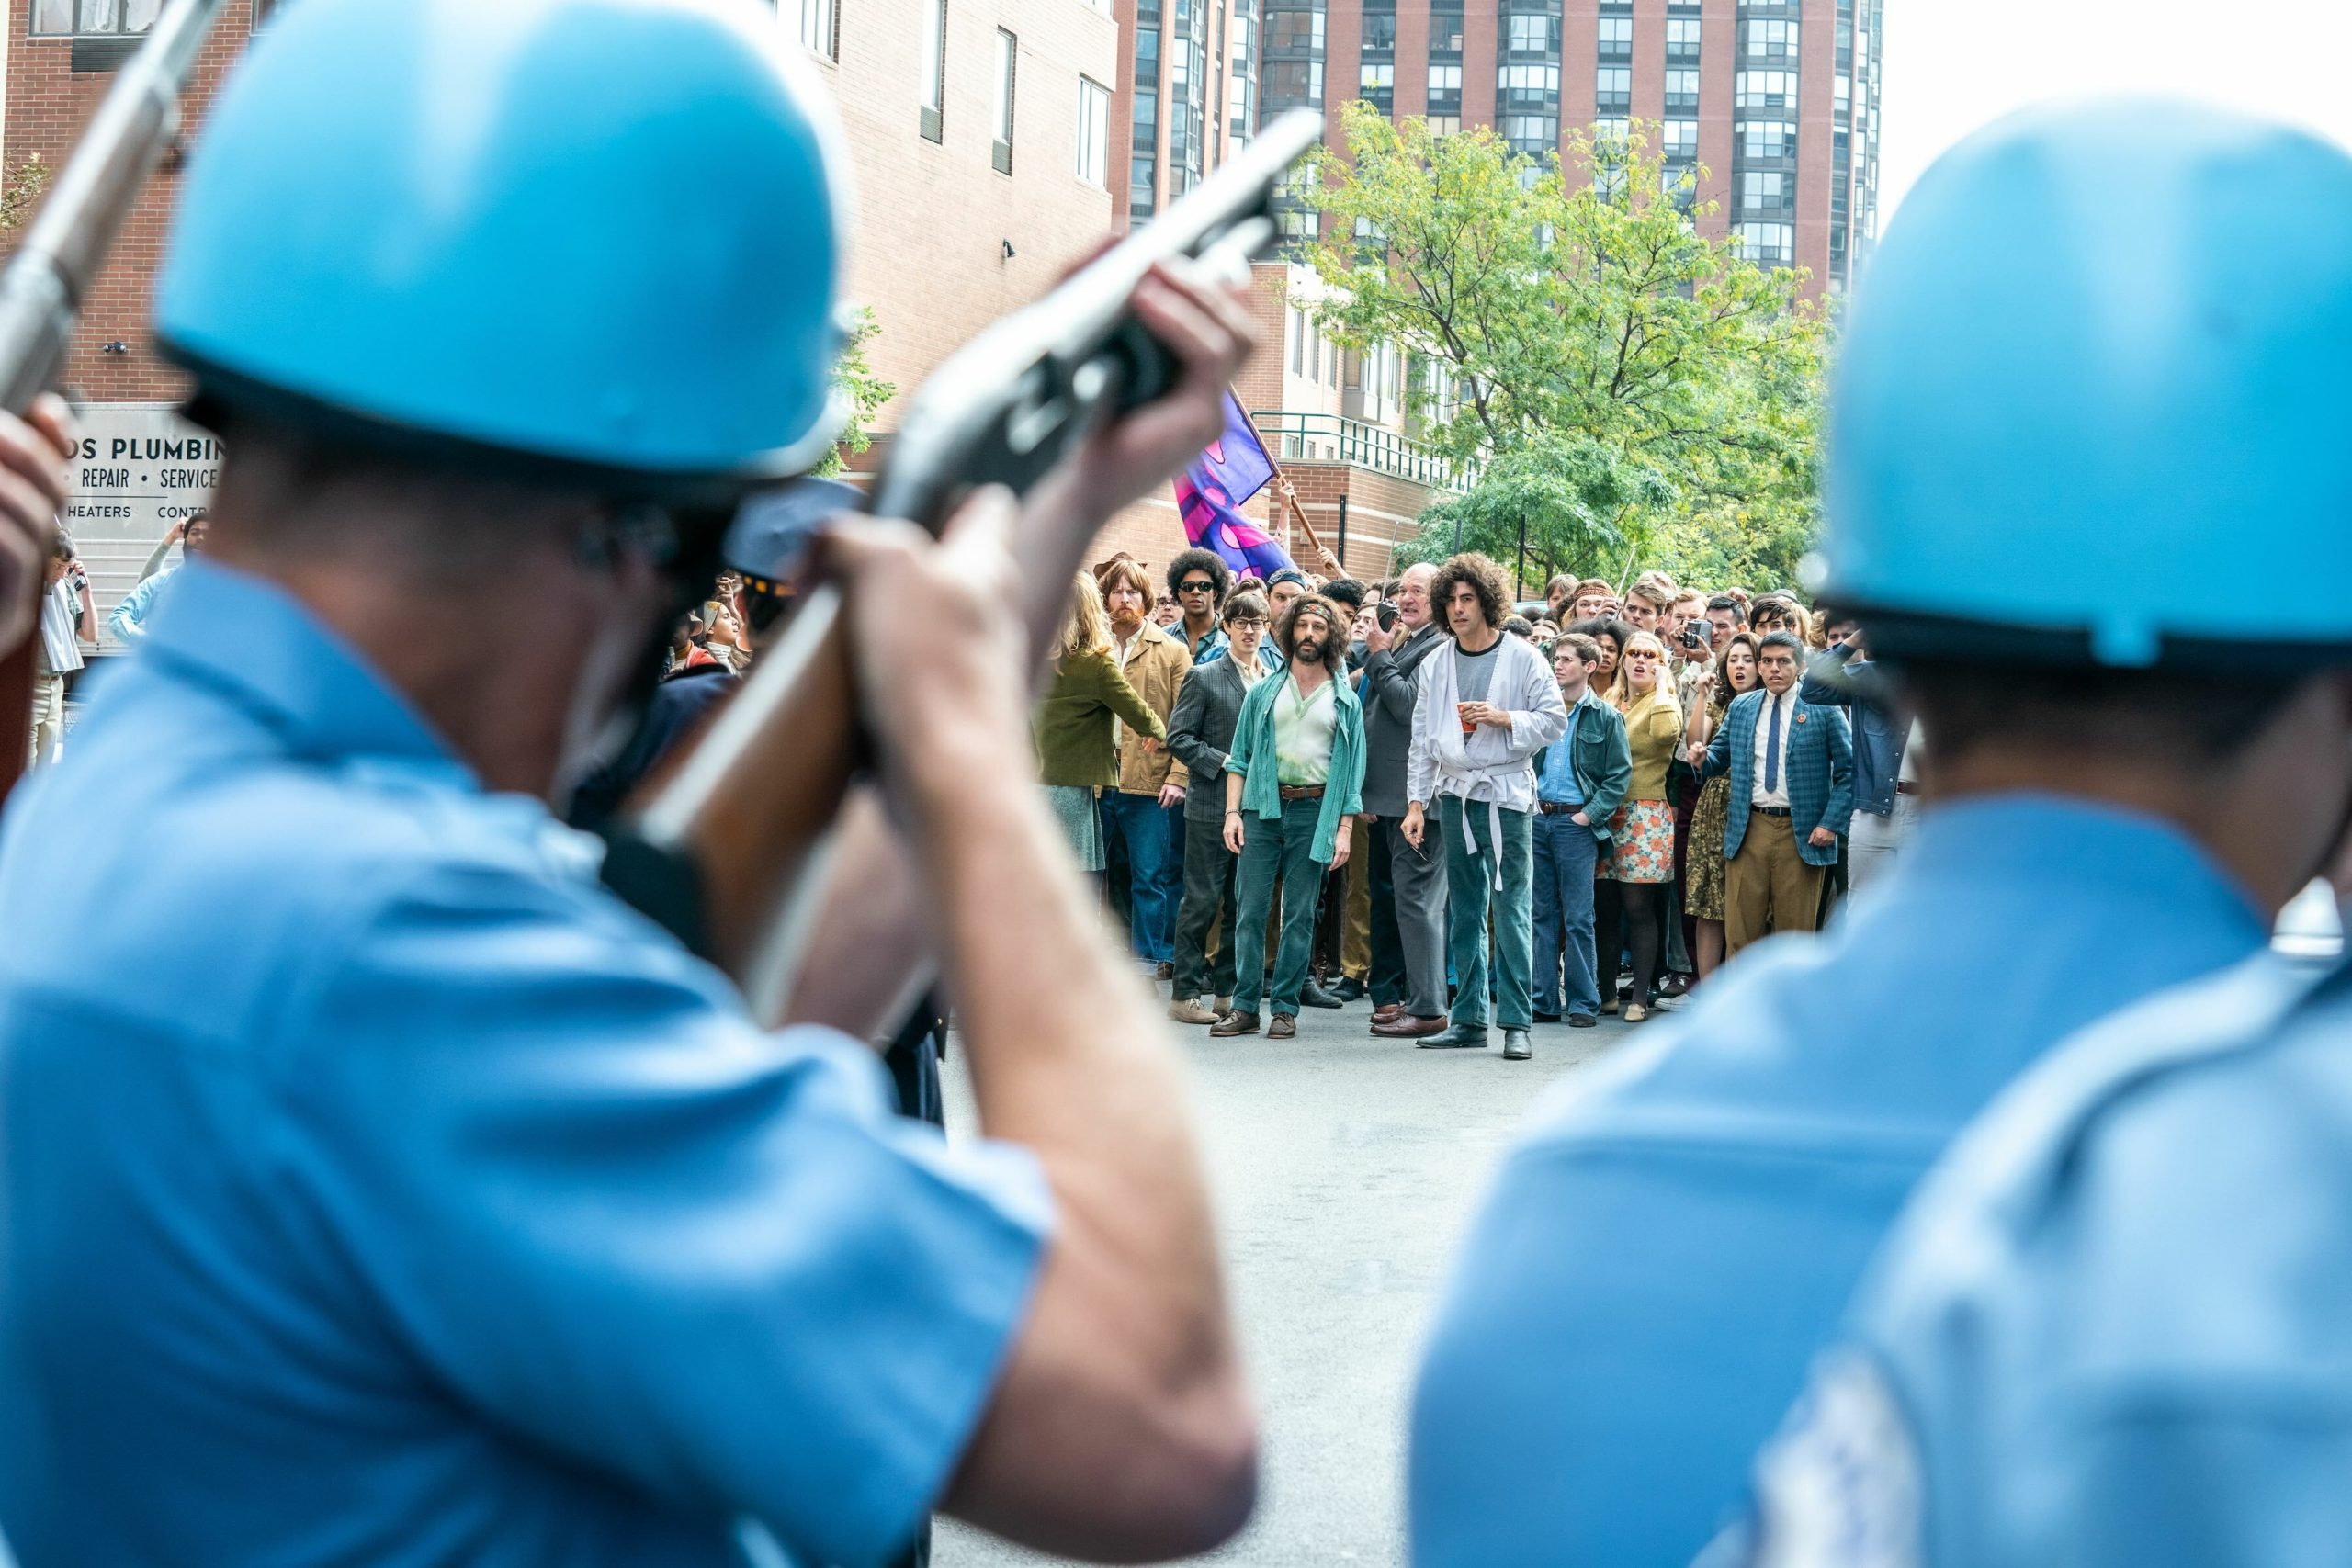 """Protest scene in Aaron Sorkin's film """"The Trial of the Chicago 7."""